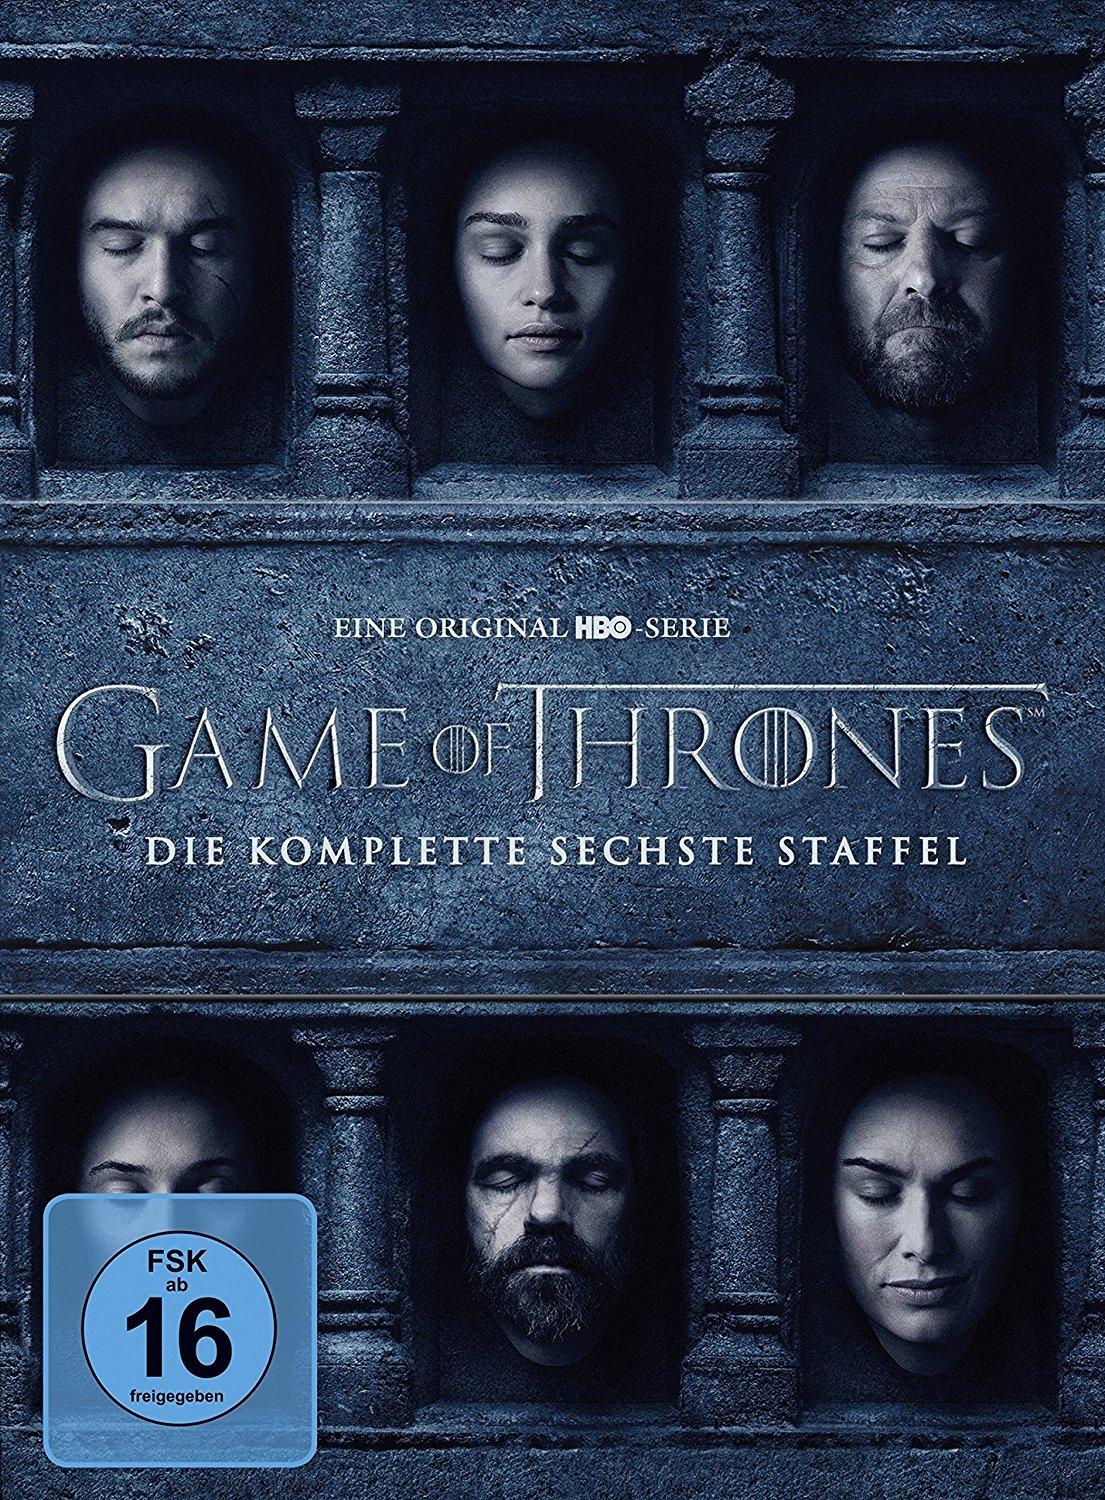 dvd 11 16 game of thrones 6